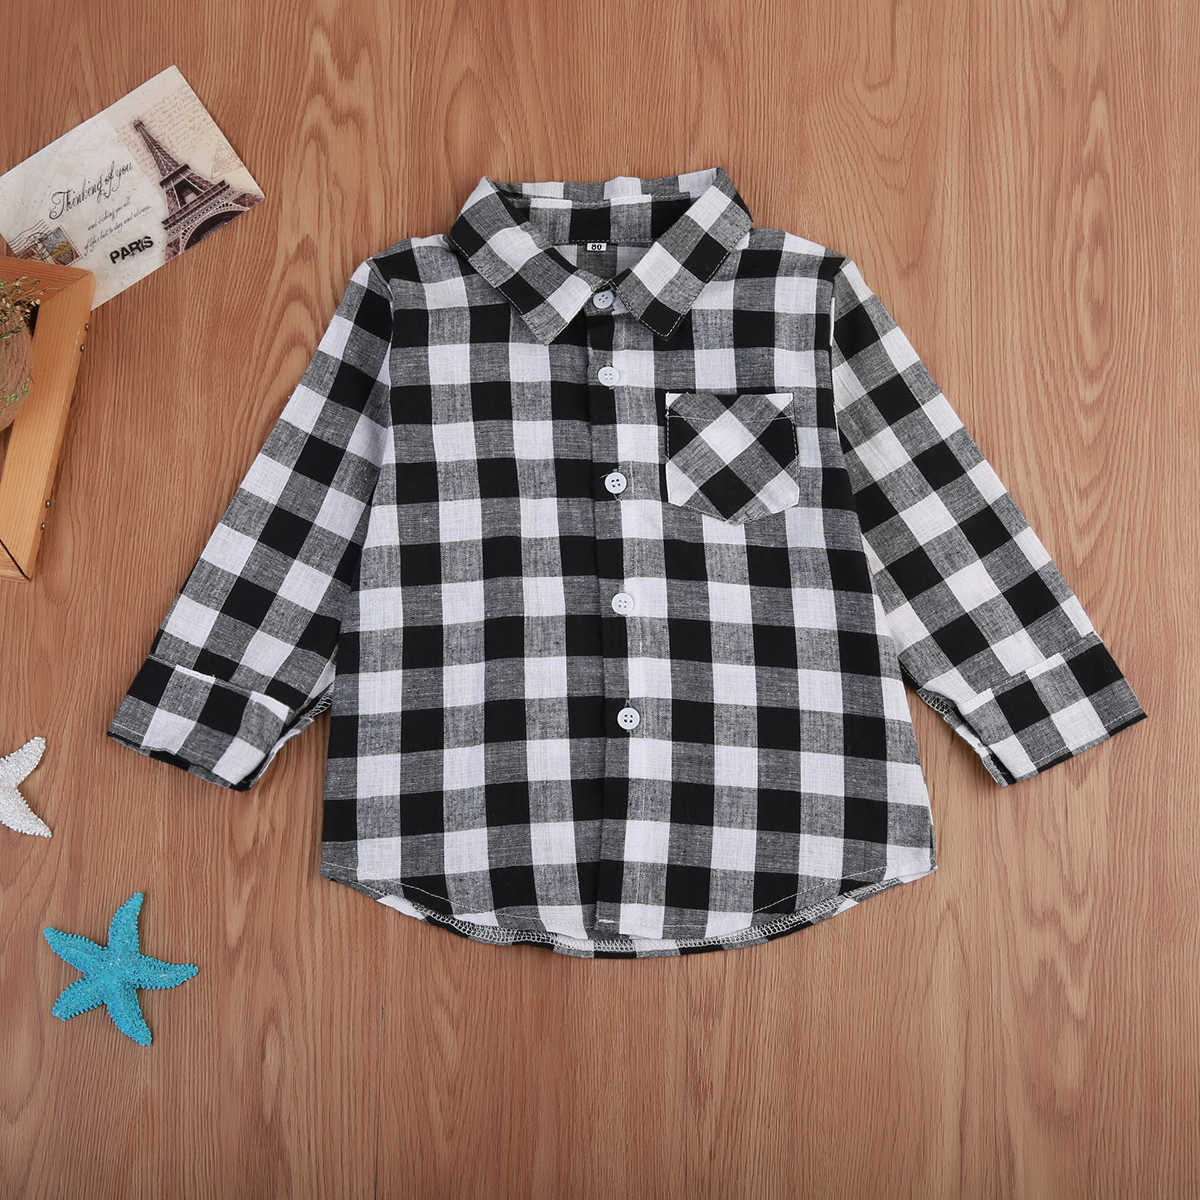 99778b6ec Baby Kids Boy Girl Long Sleeve Shirt Plaid Check Cotton Tops Blouse Casual  Clothes 1-